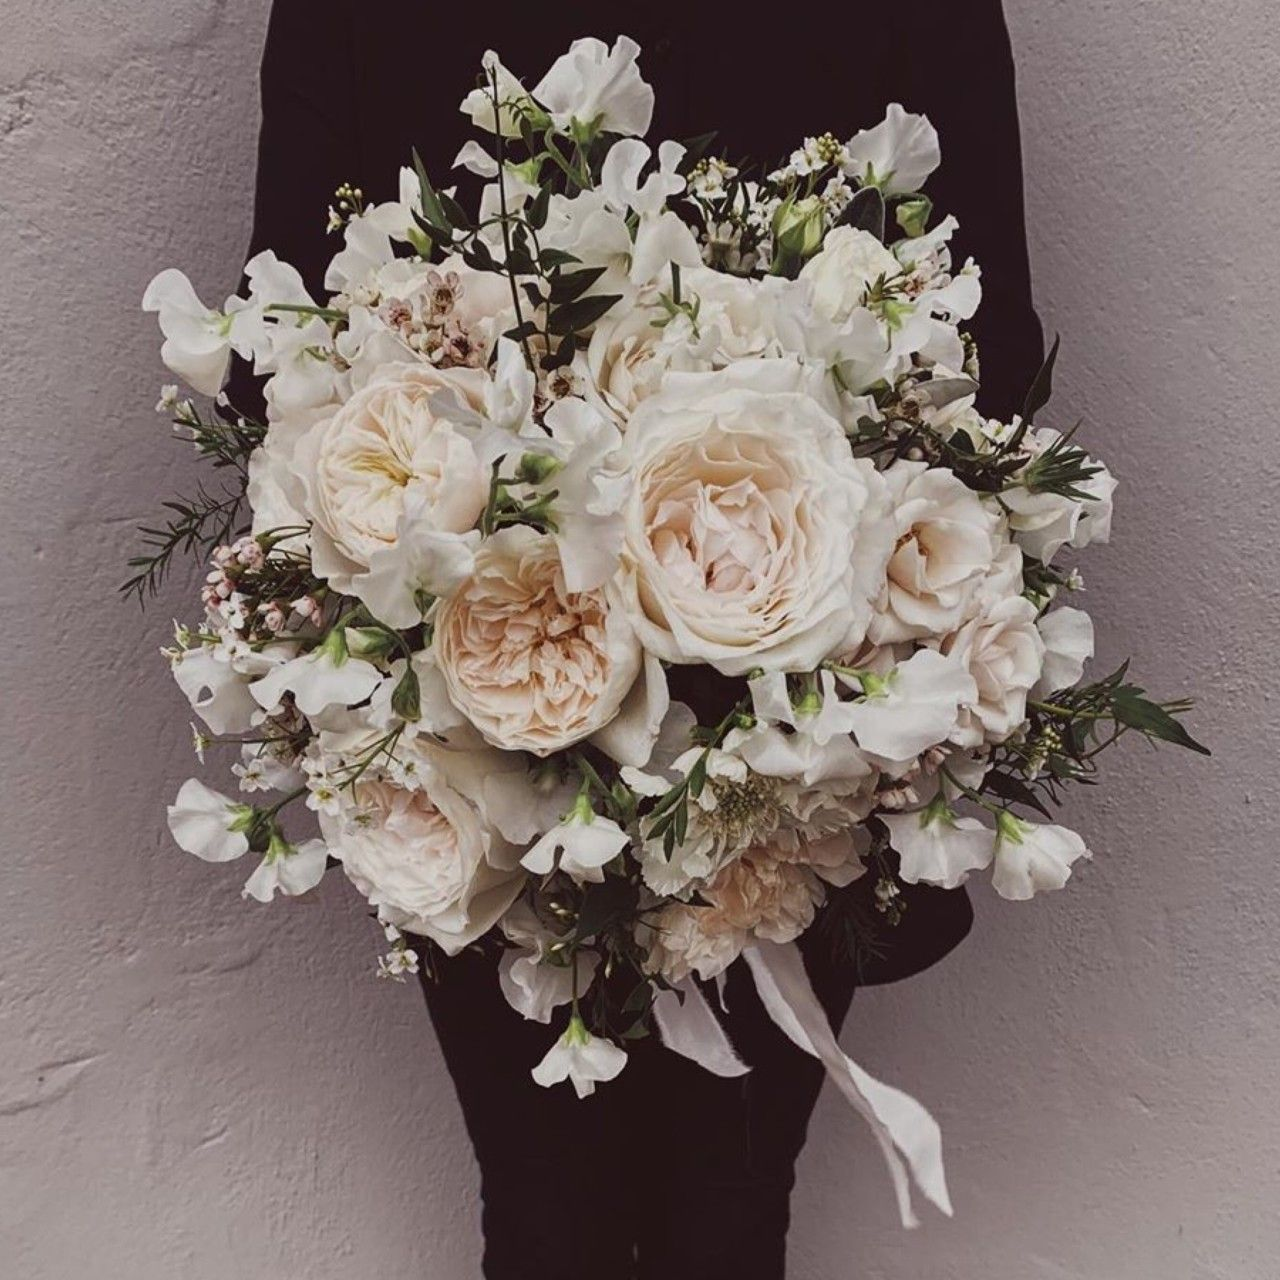 This Beautiful Hand Tied Wedding Bouquet By Wild About Flowers Includes David Austin Wedding Roses Grown At David Austin Bouquet Rose Wedding Wedding Bouquets